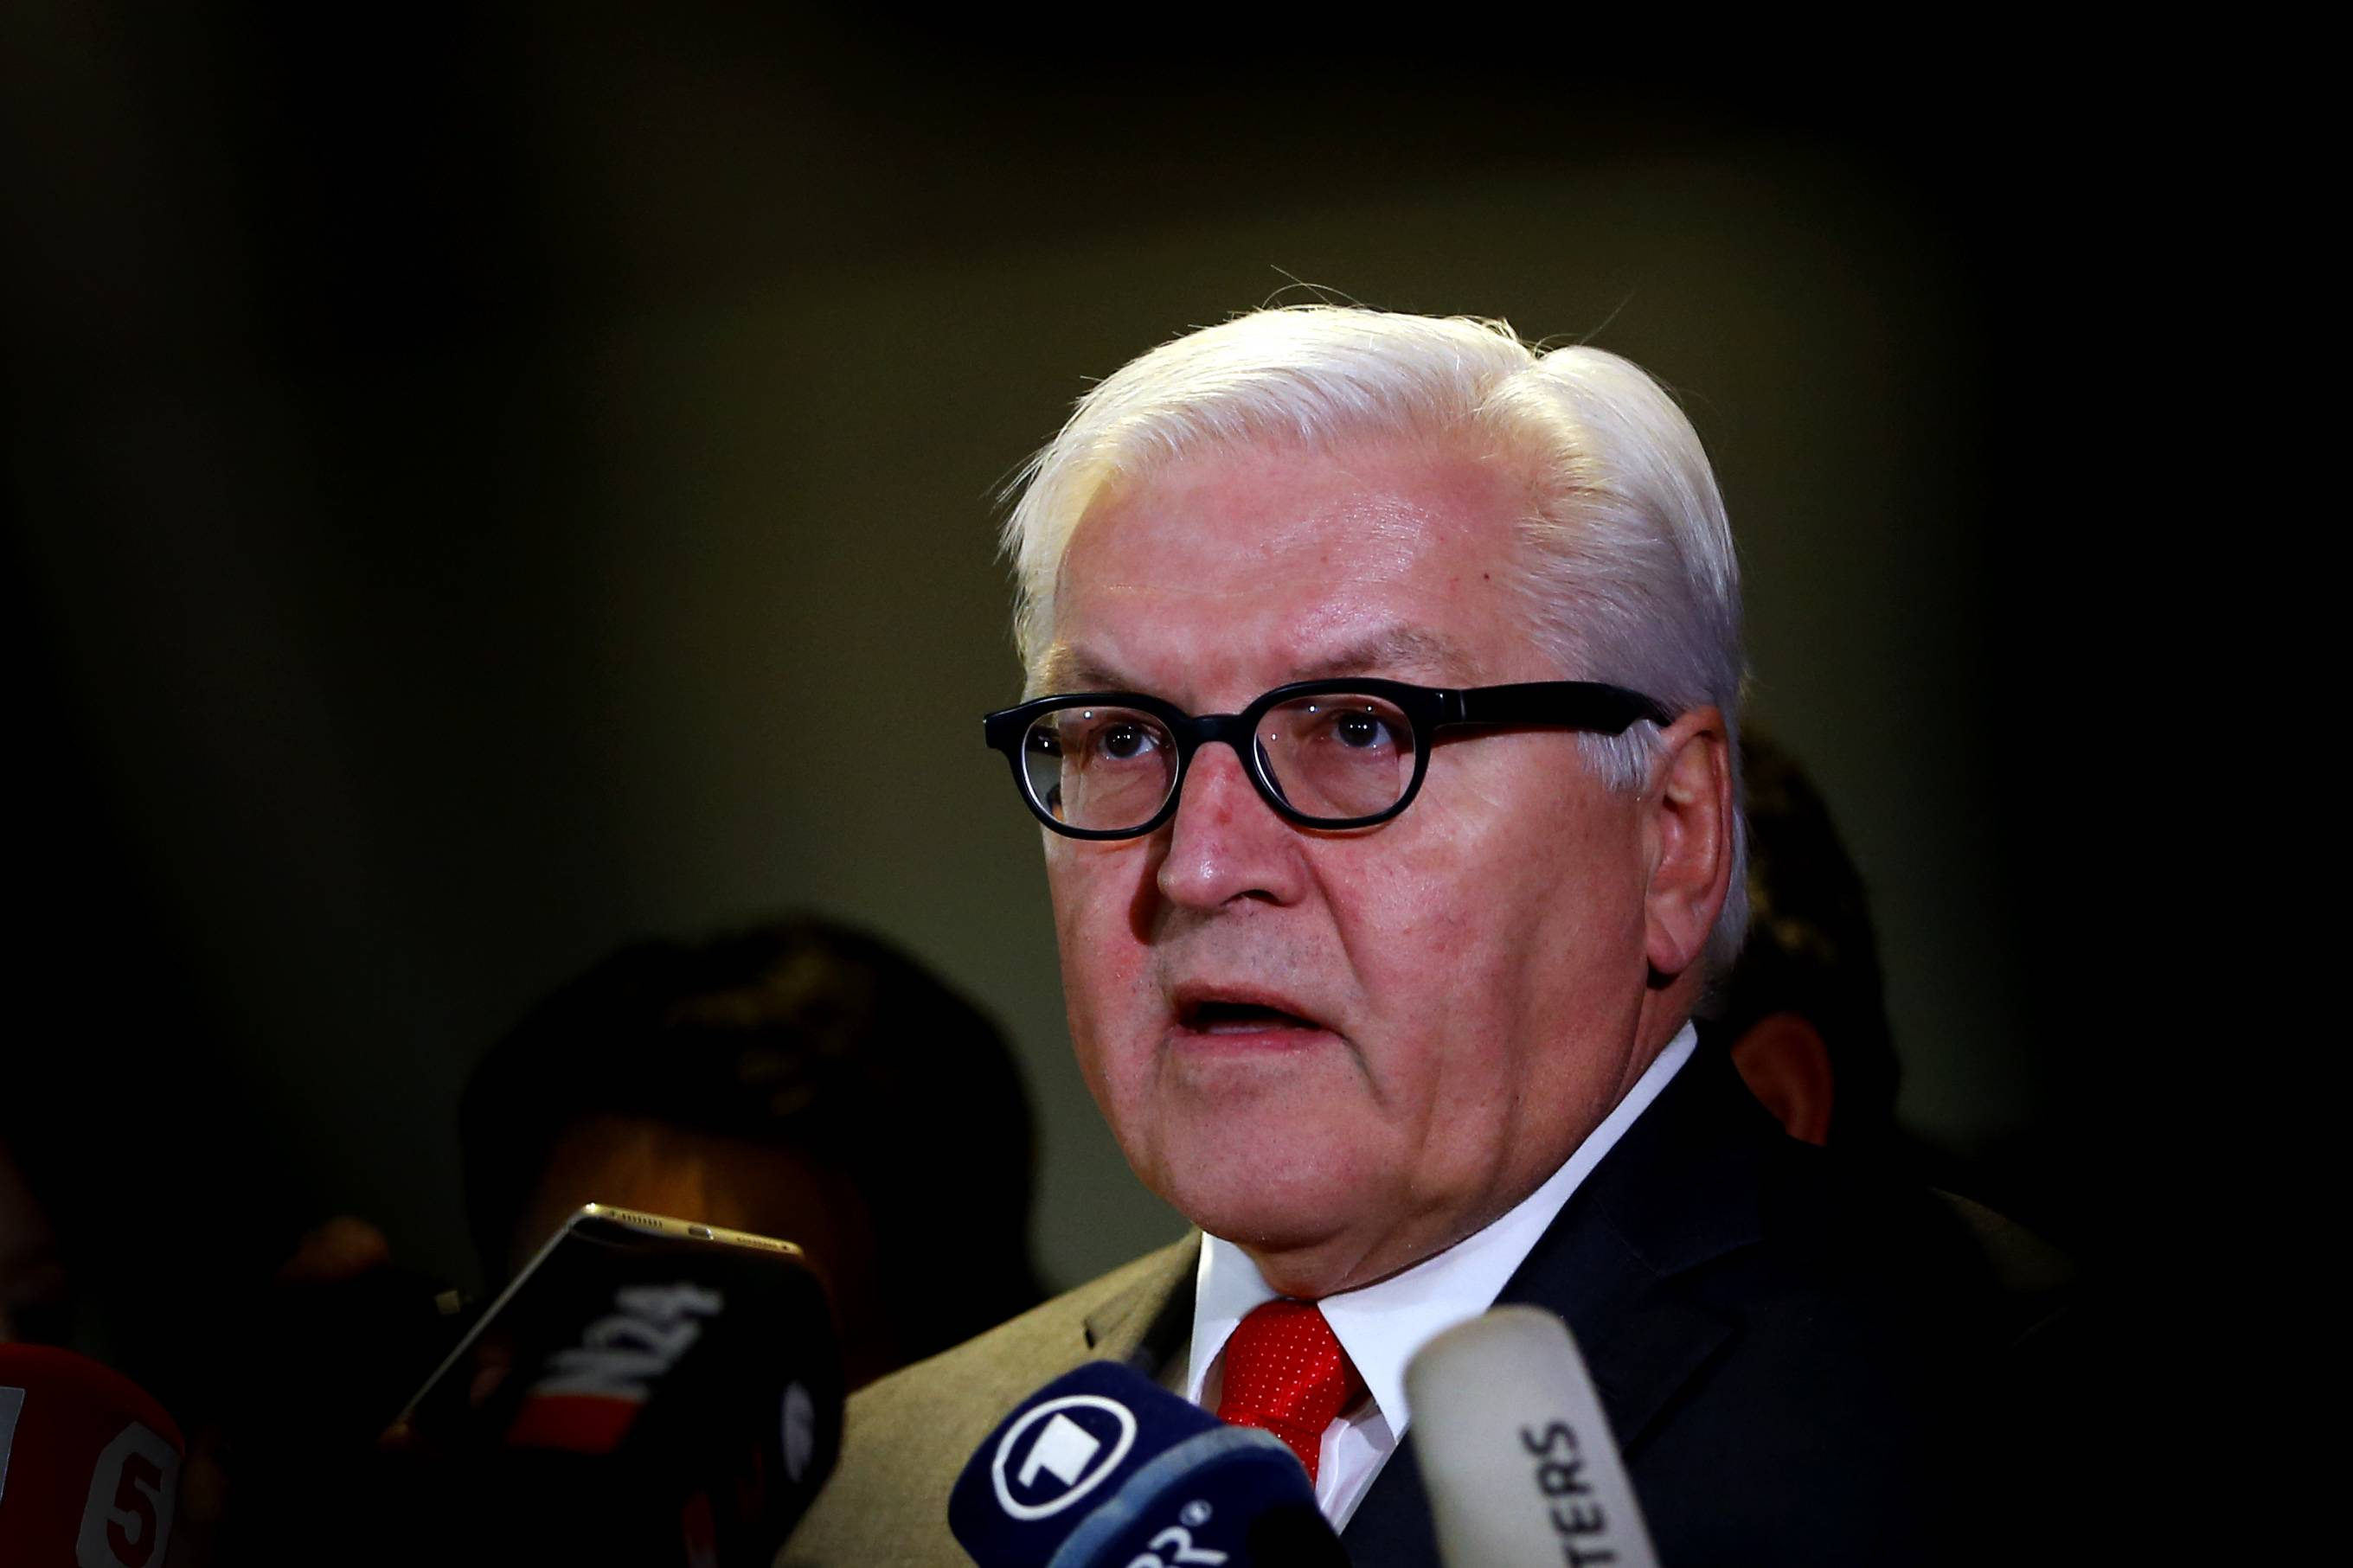 German Foreign Minister Frank-Walter Steinmeier briefs the media prior to the Syria talks in Munich, Germany, Thursday, Feb. 11, 2016.